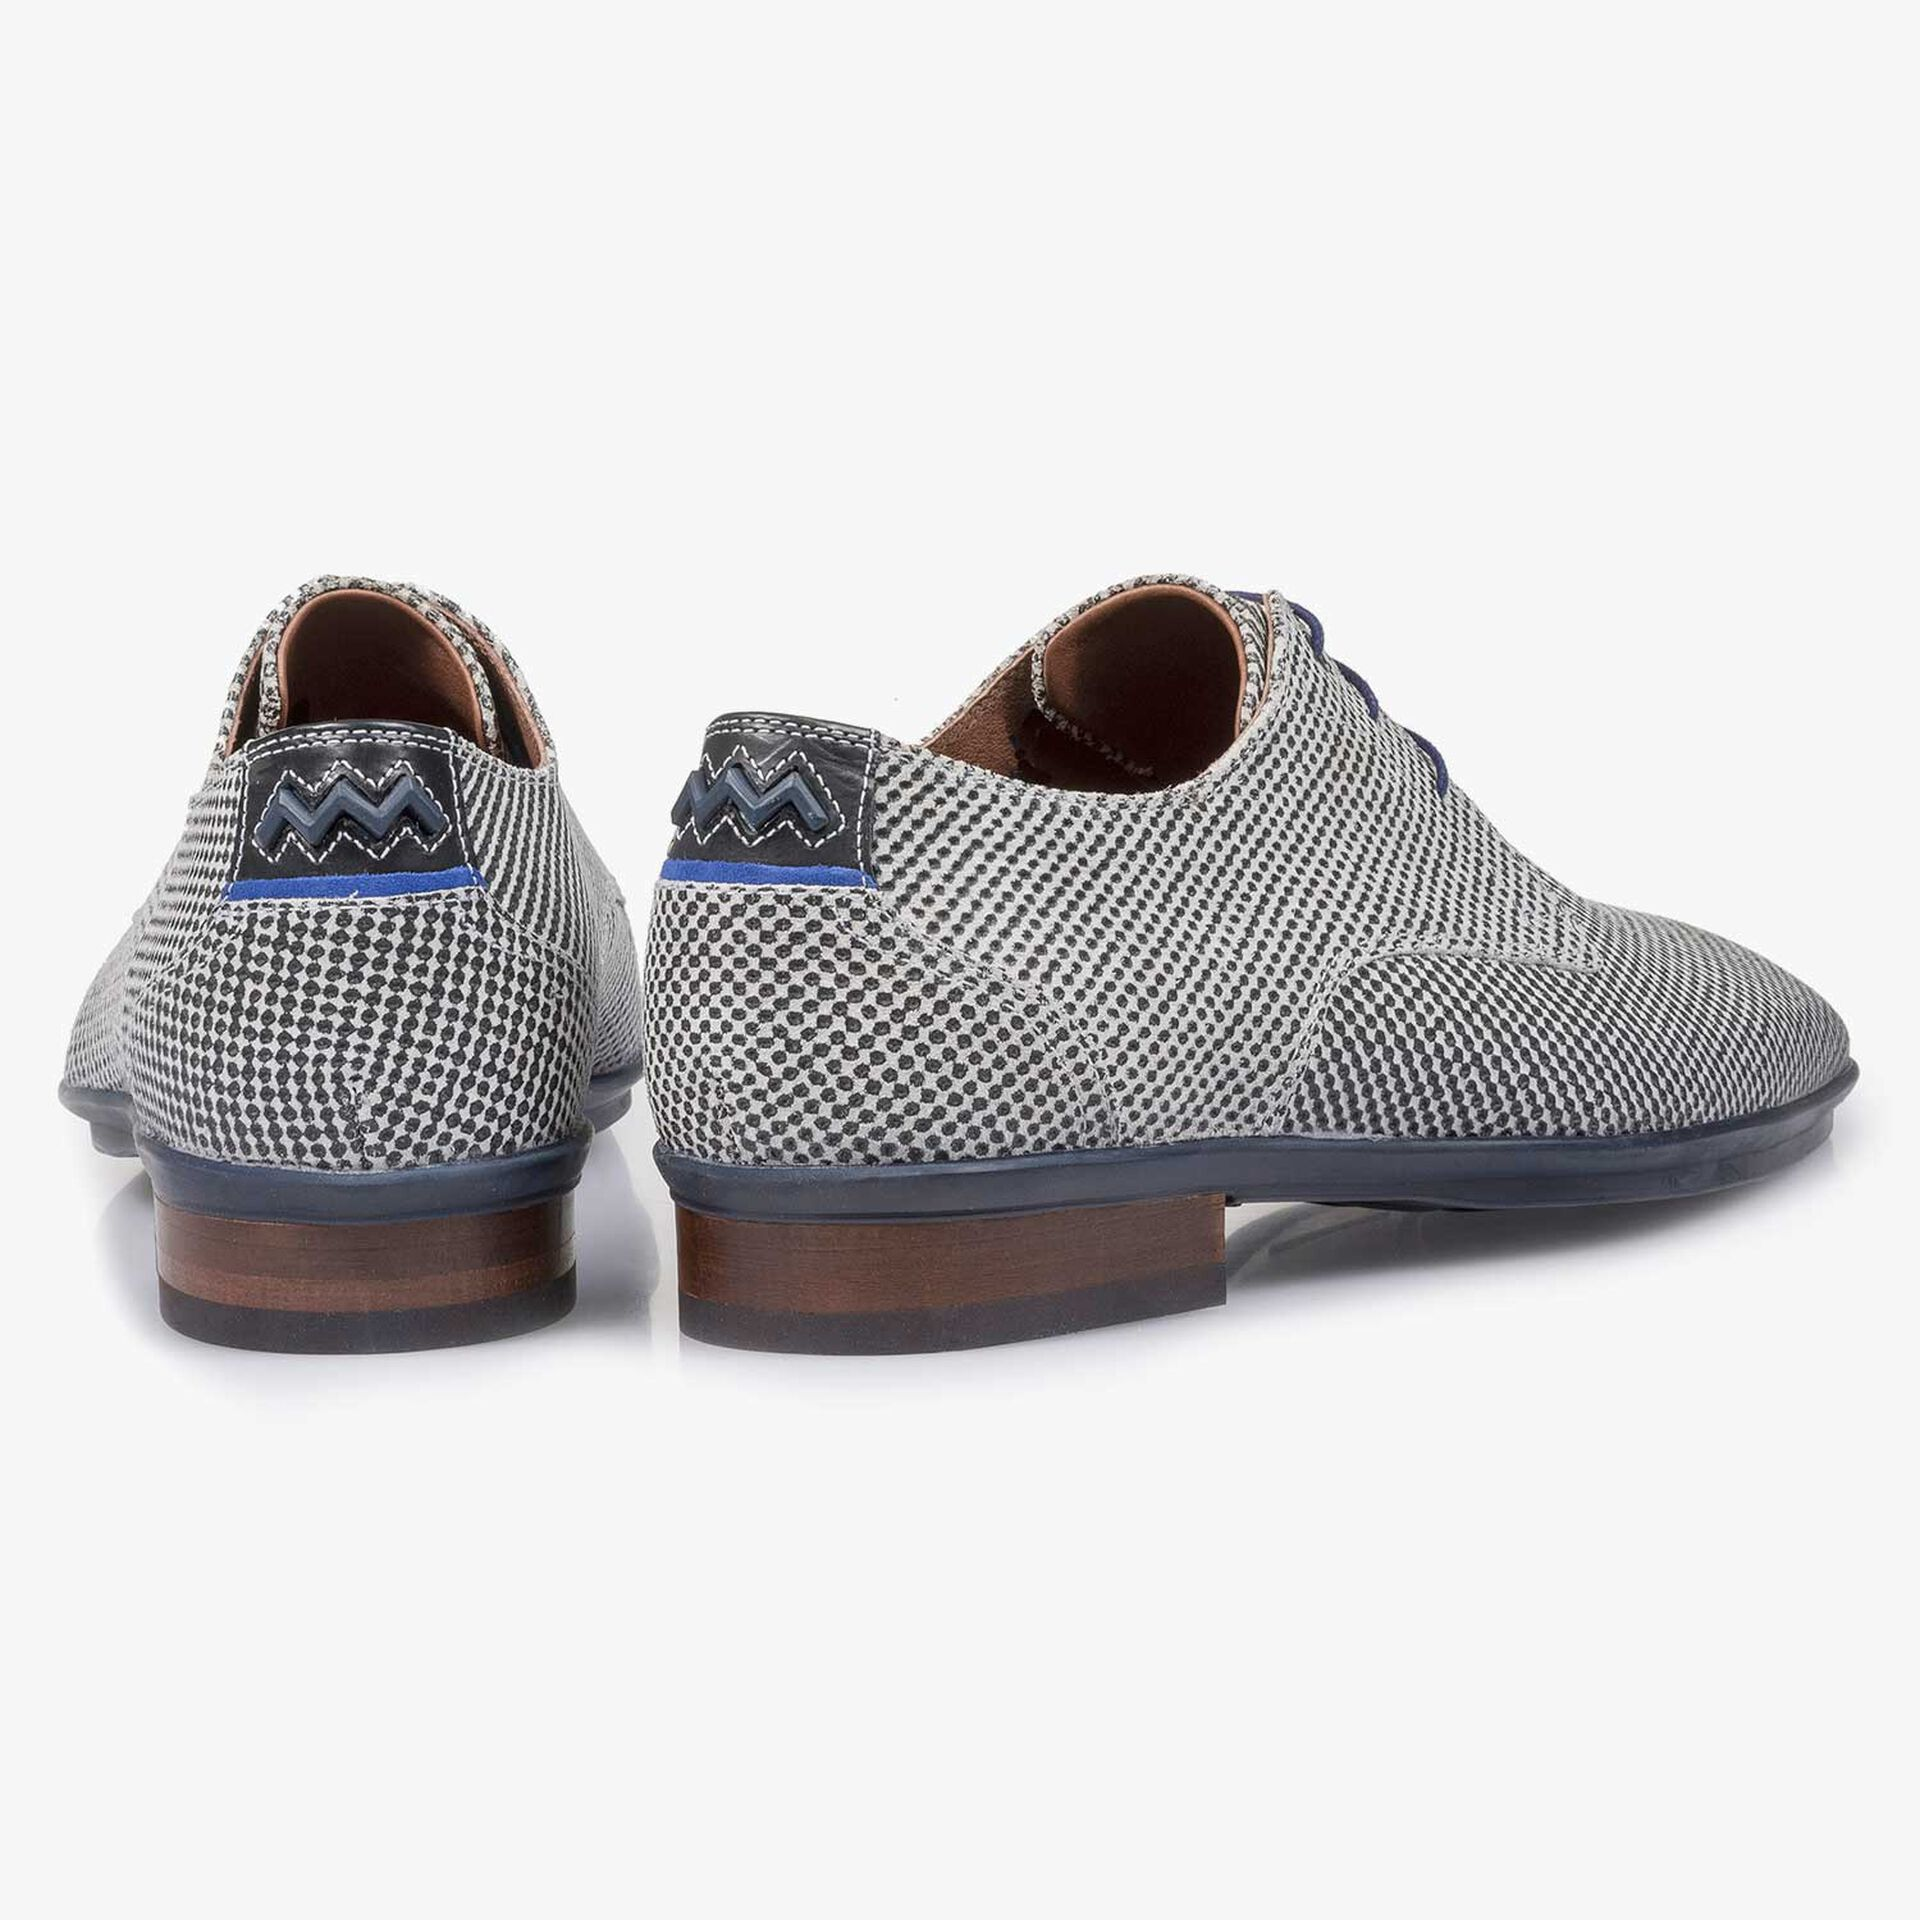 Light grey suede leather lace shoe with a mini print